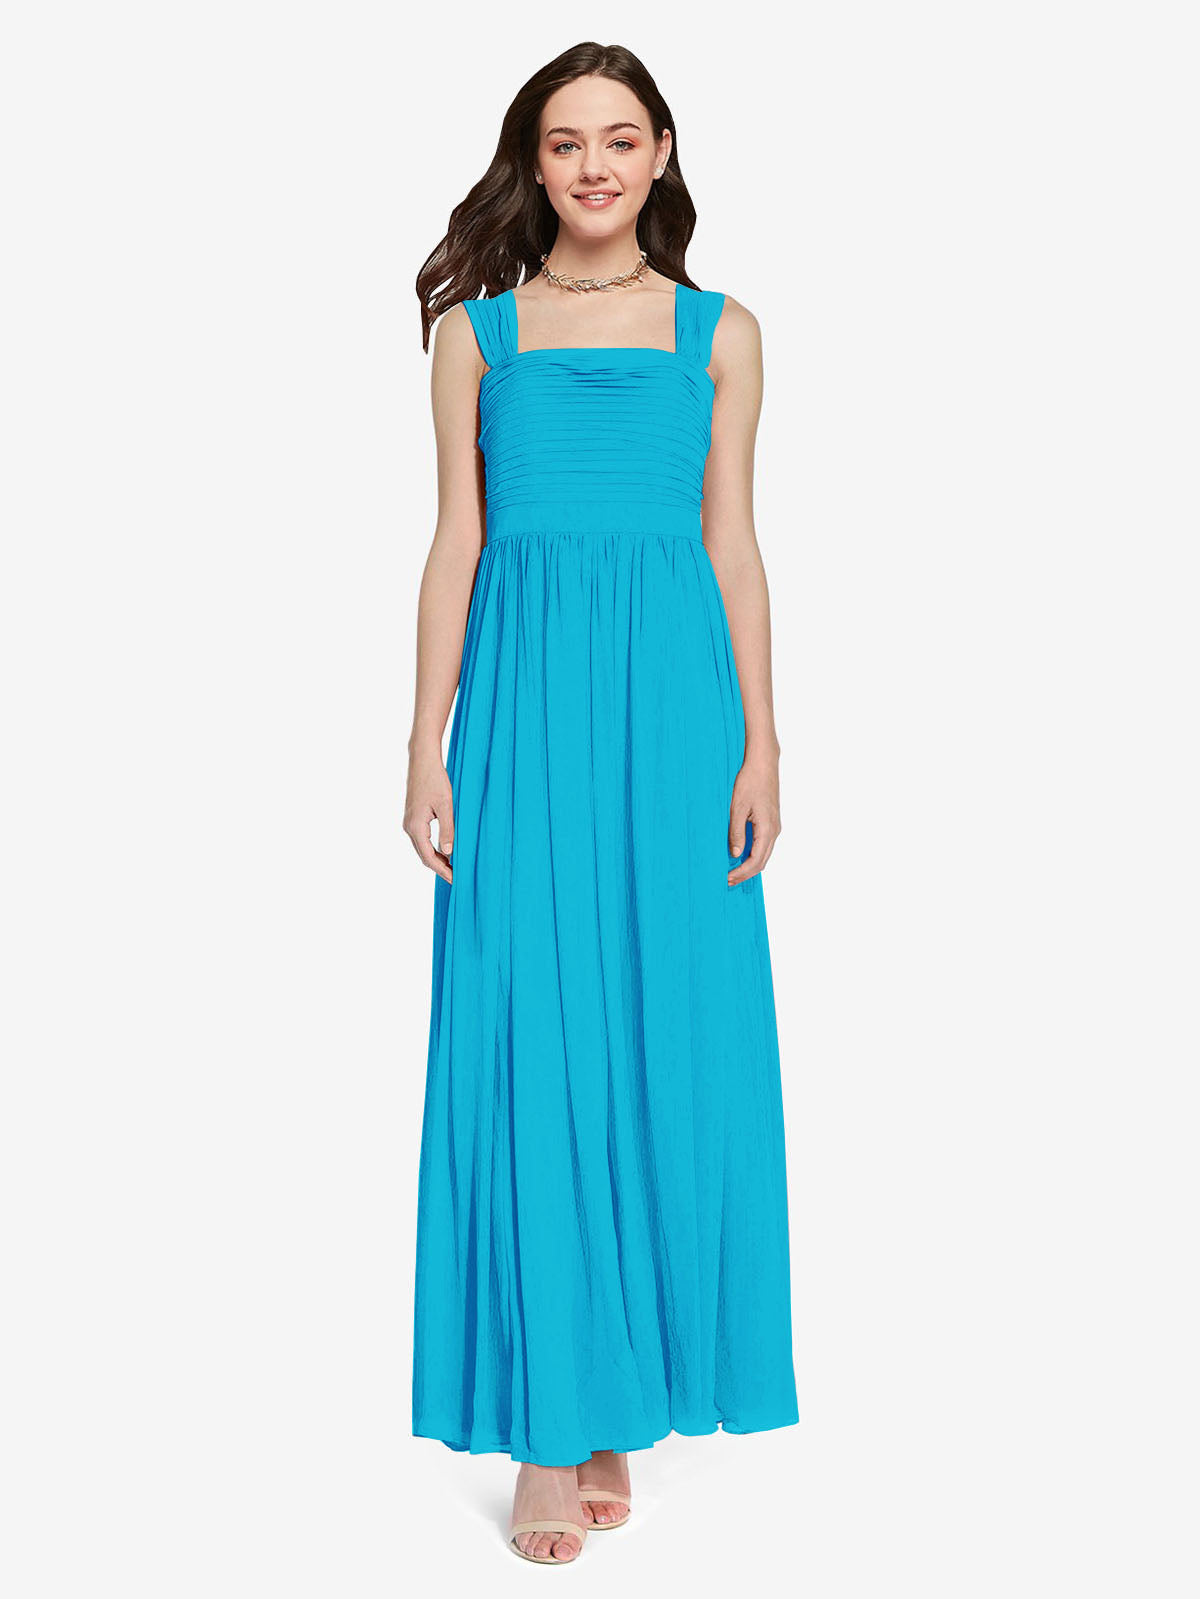 Long A-Line Square Sleeveless Turquoise Chiffon Bridesmaid Dress Aldridge